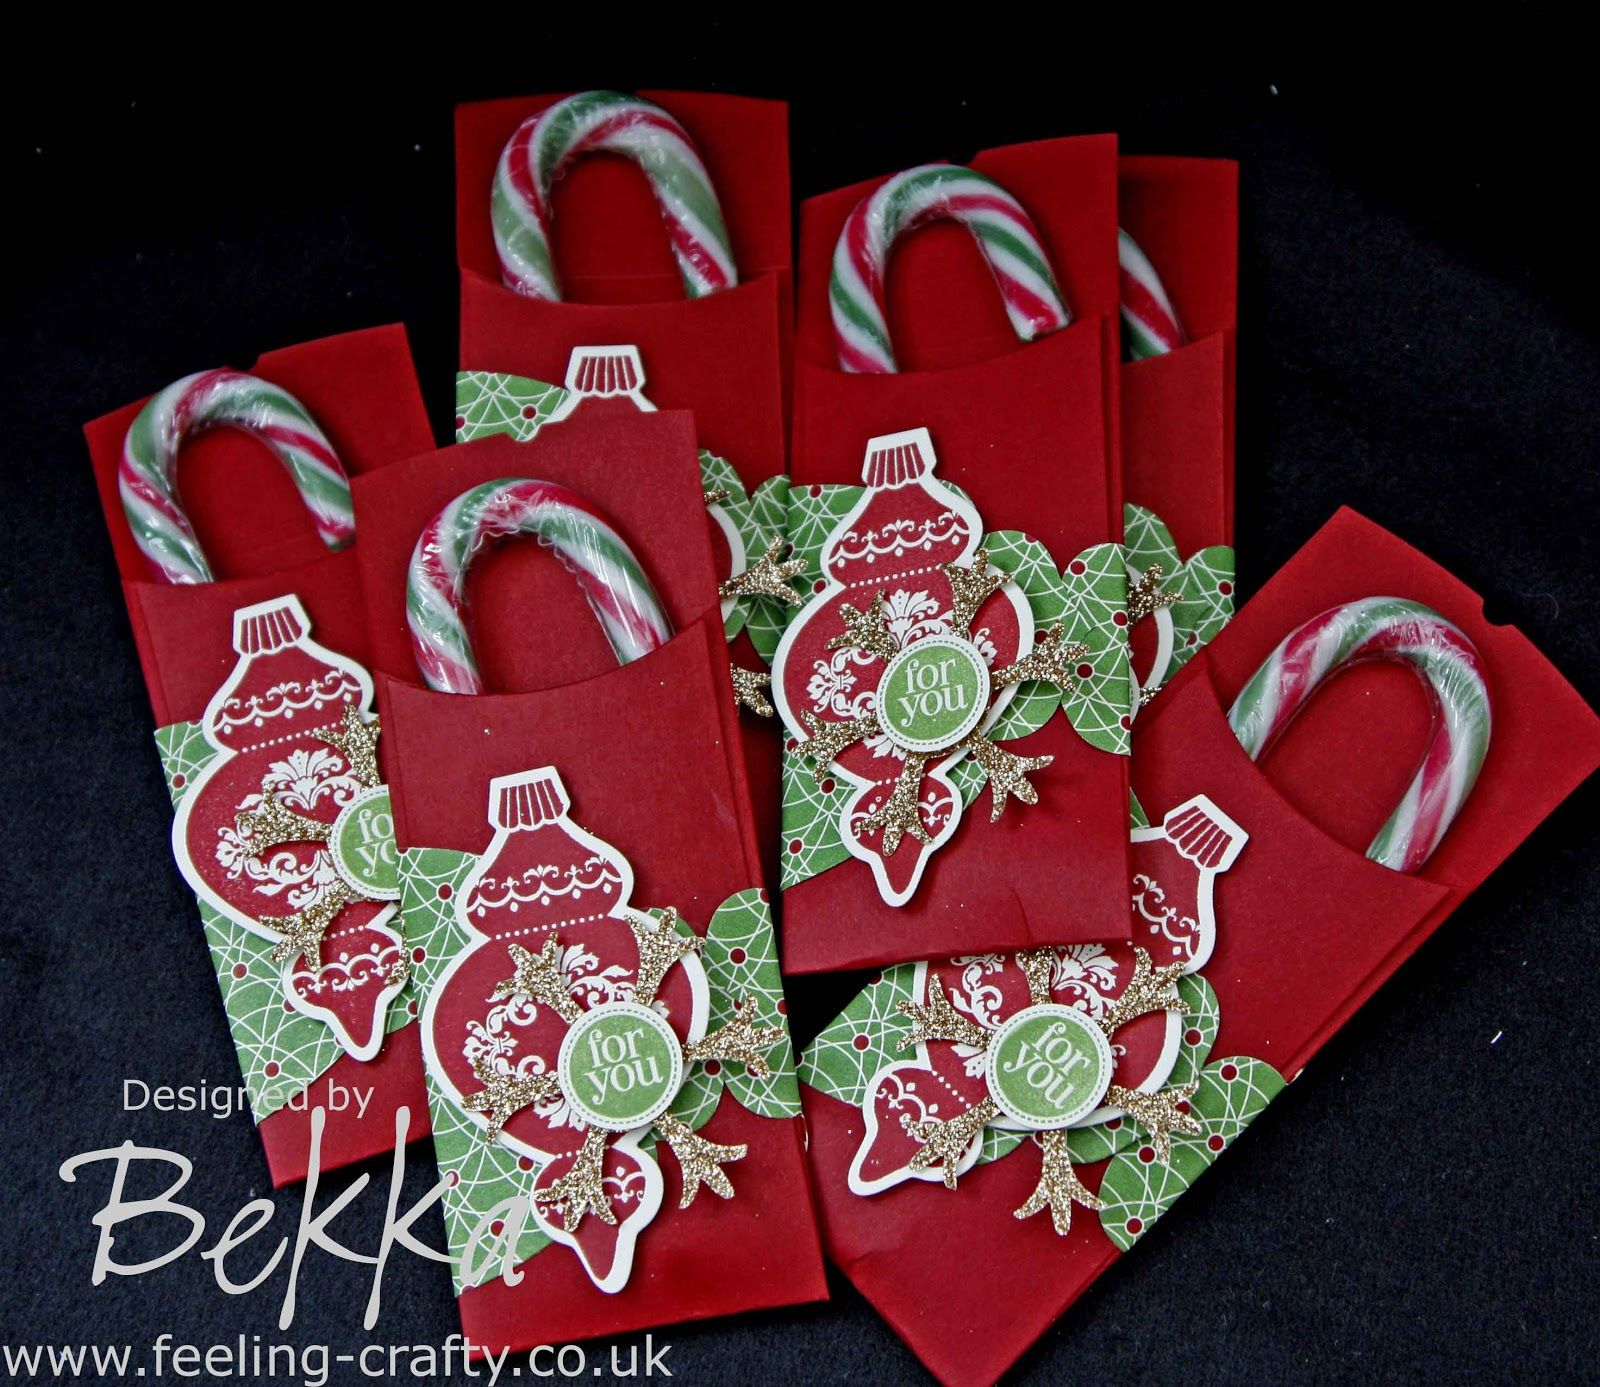 Stampin Up Christmas Craft Fair Ideas Part - 29: Craft Fairs · Christma Candy Cane Decorations | Cute Candy Cane Holder By  Stampinu0027 Up! Demonstrator Bekka